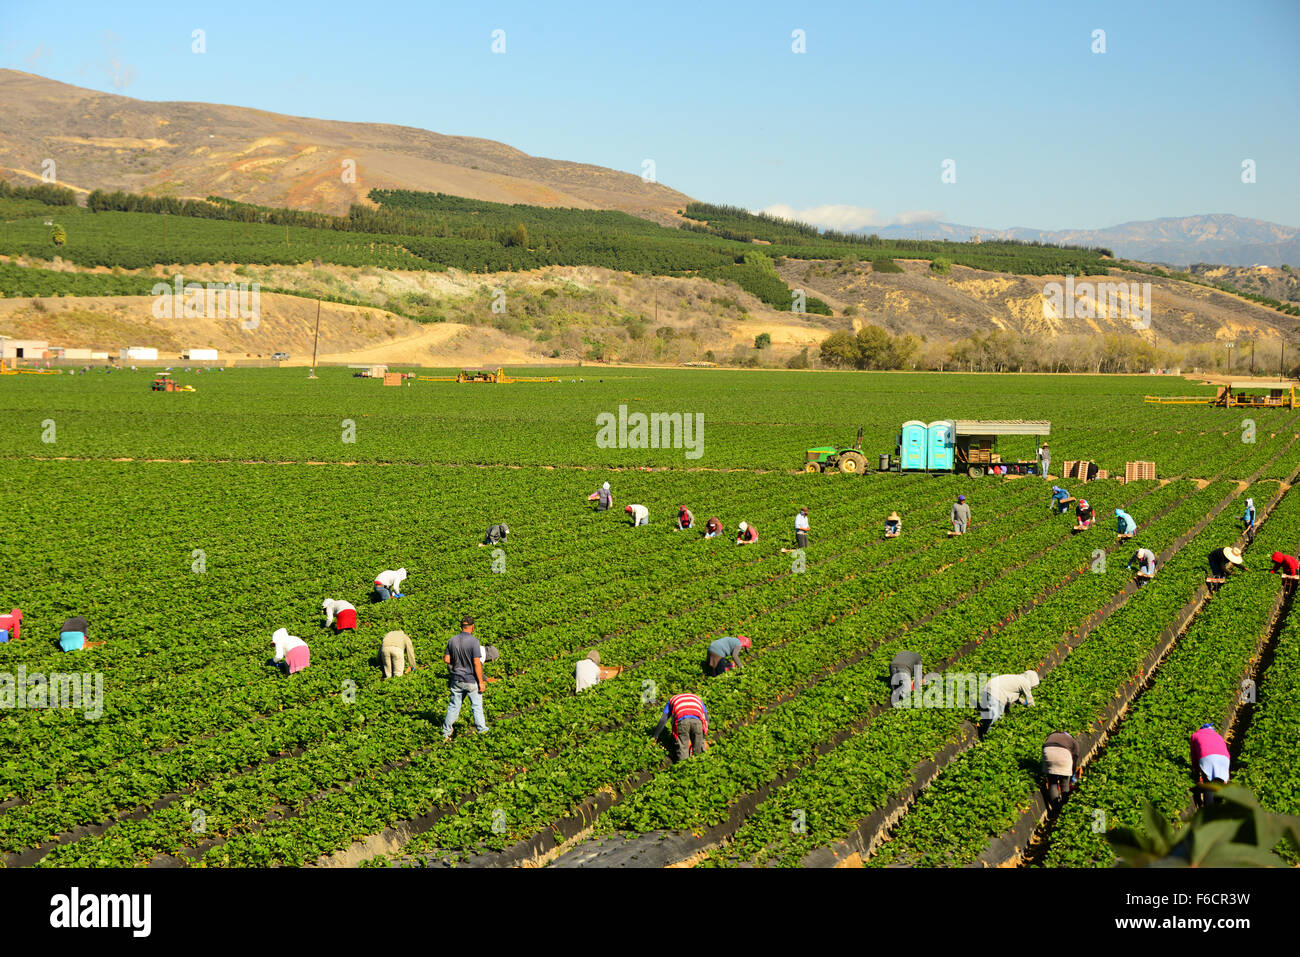 migrant seasonal Mexican workers work picking strawberry crop in Oxnard Central California USA - Stock Image